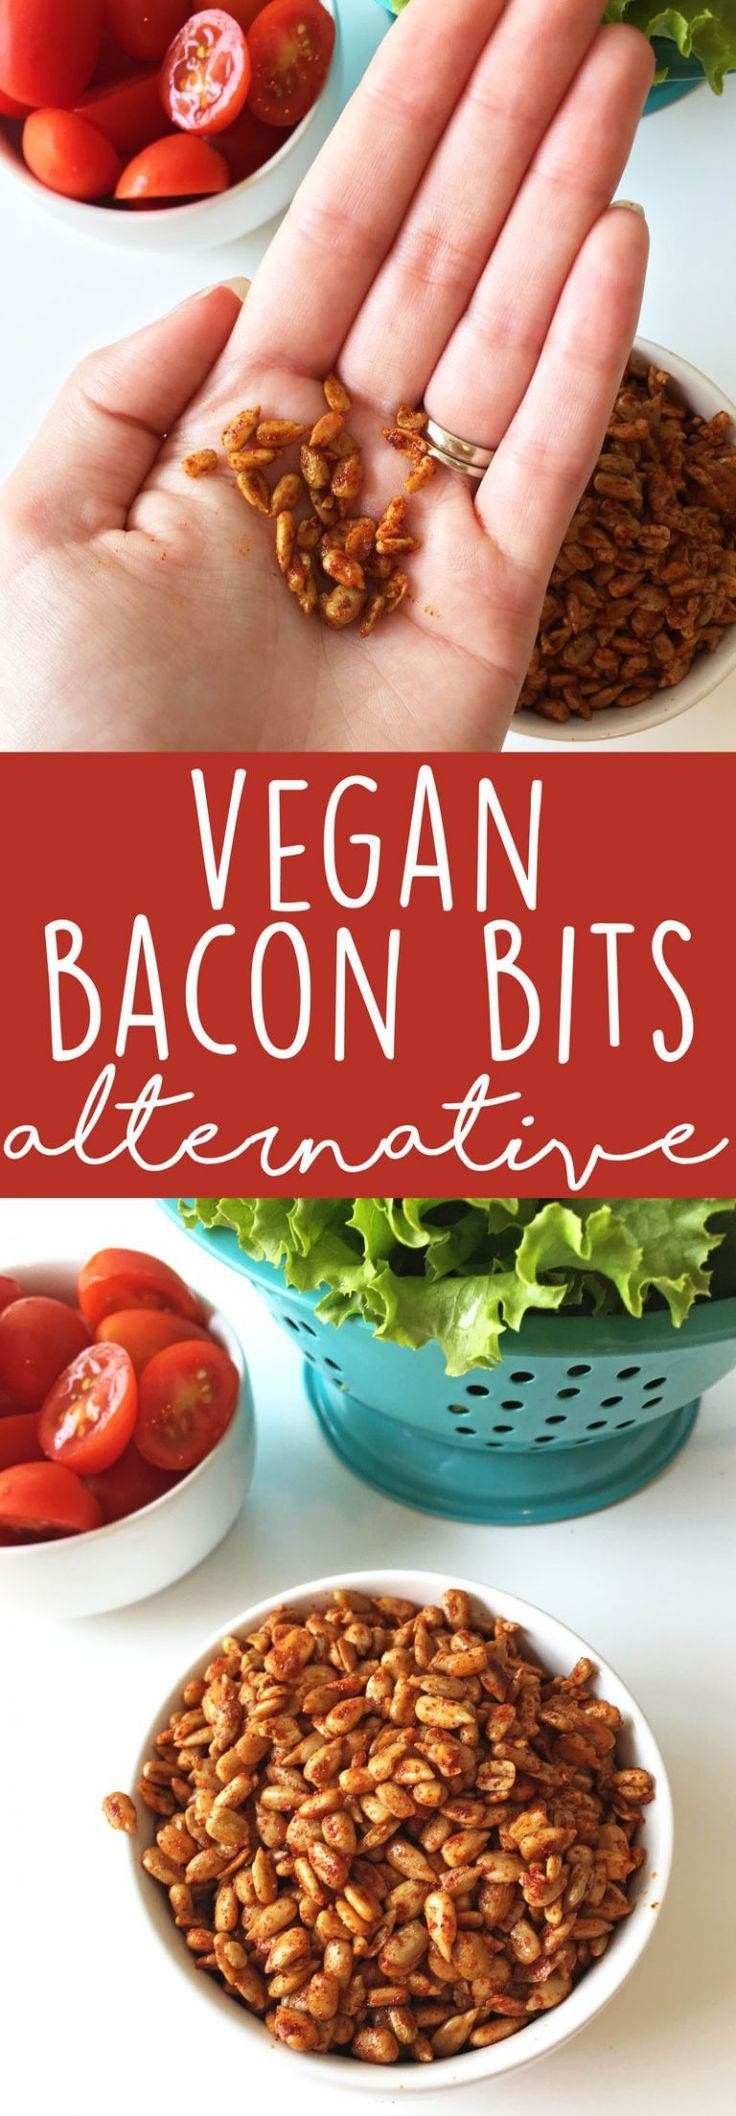 Healthy vegan salad recipes don't have to be bland and boring! Make these super simple and quick vegan bacon bits to jazz up your salad…